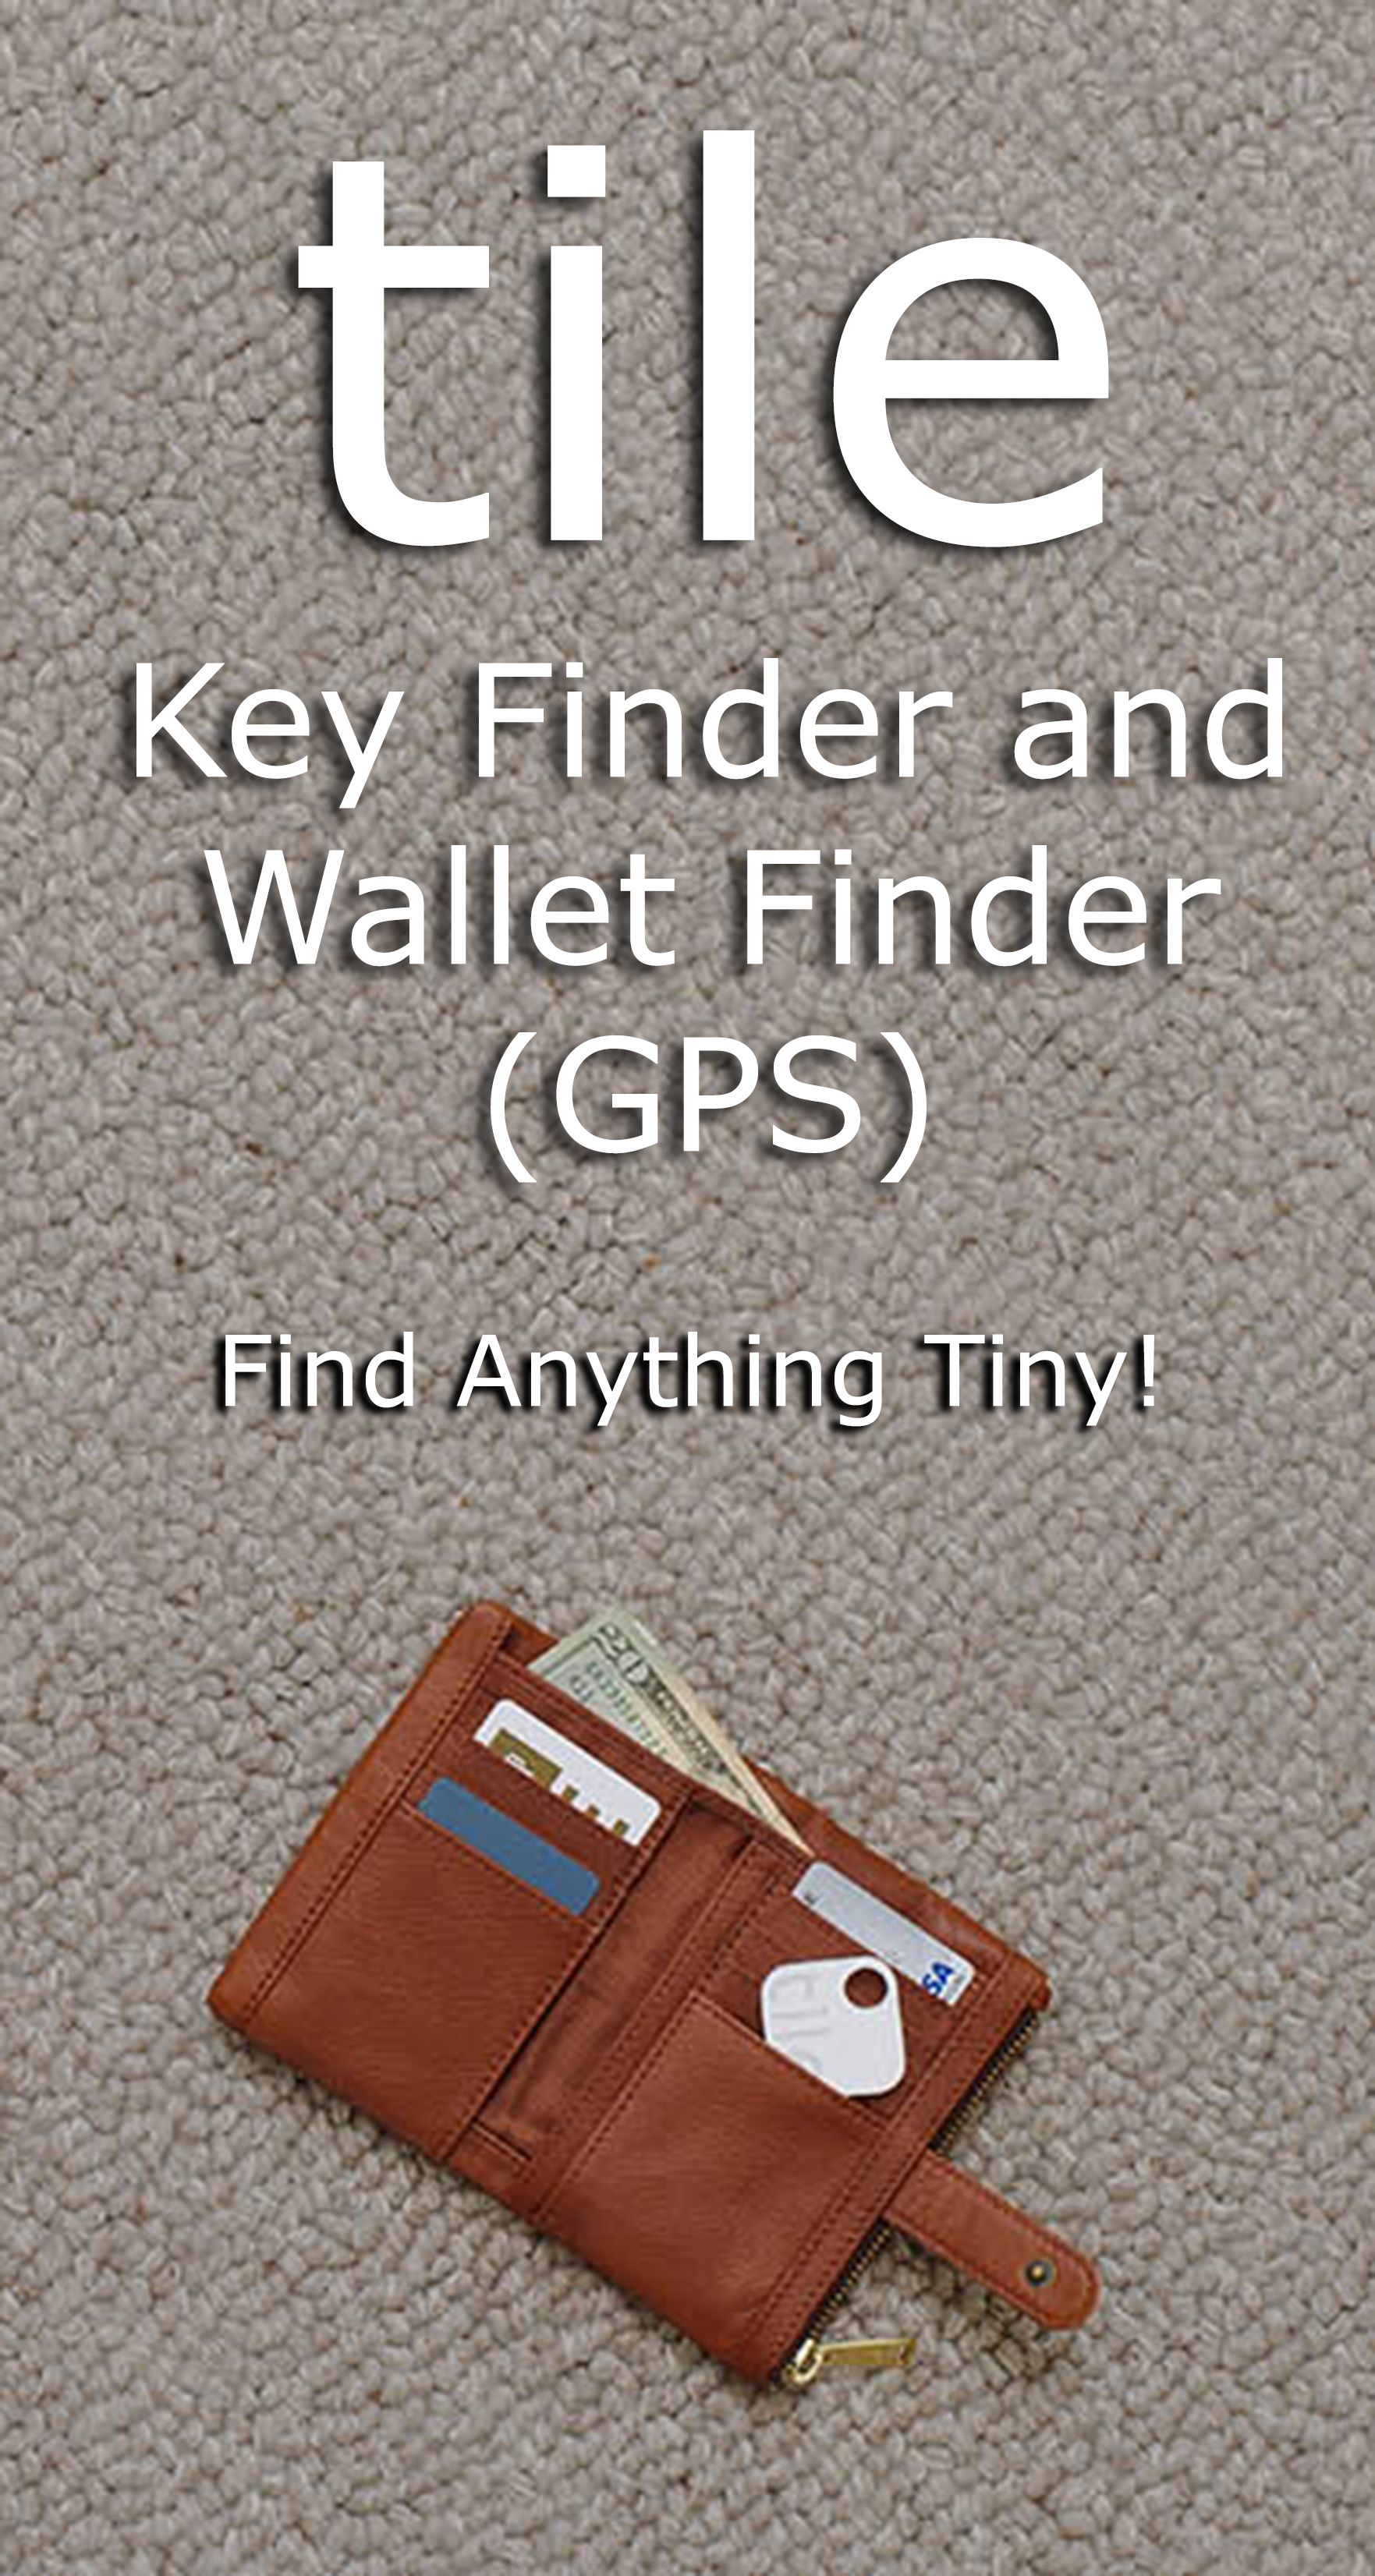 Tile key finder and wallet finder gps find anything tiny tile key finder and wallet finder gps find anything tiny ppazfo